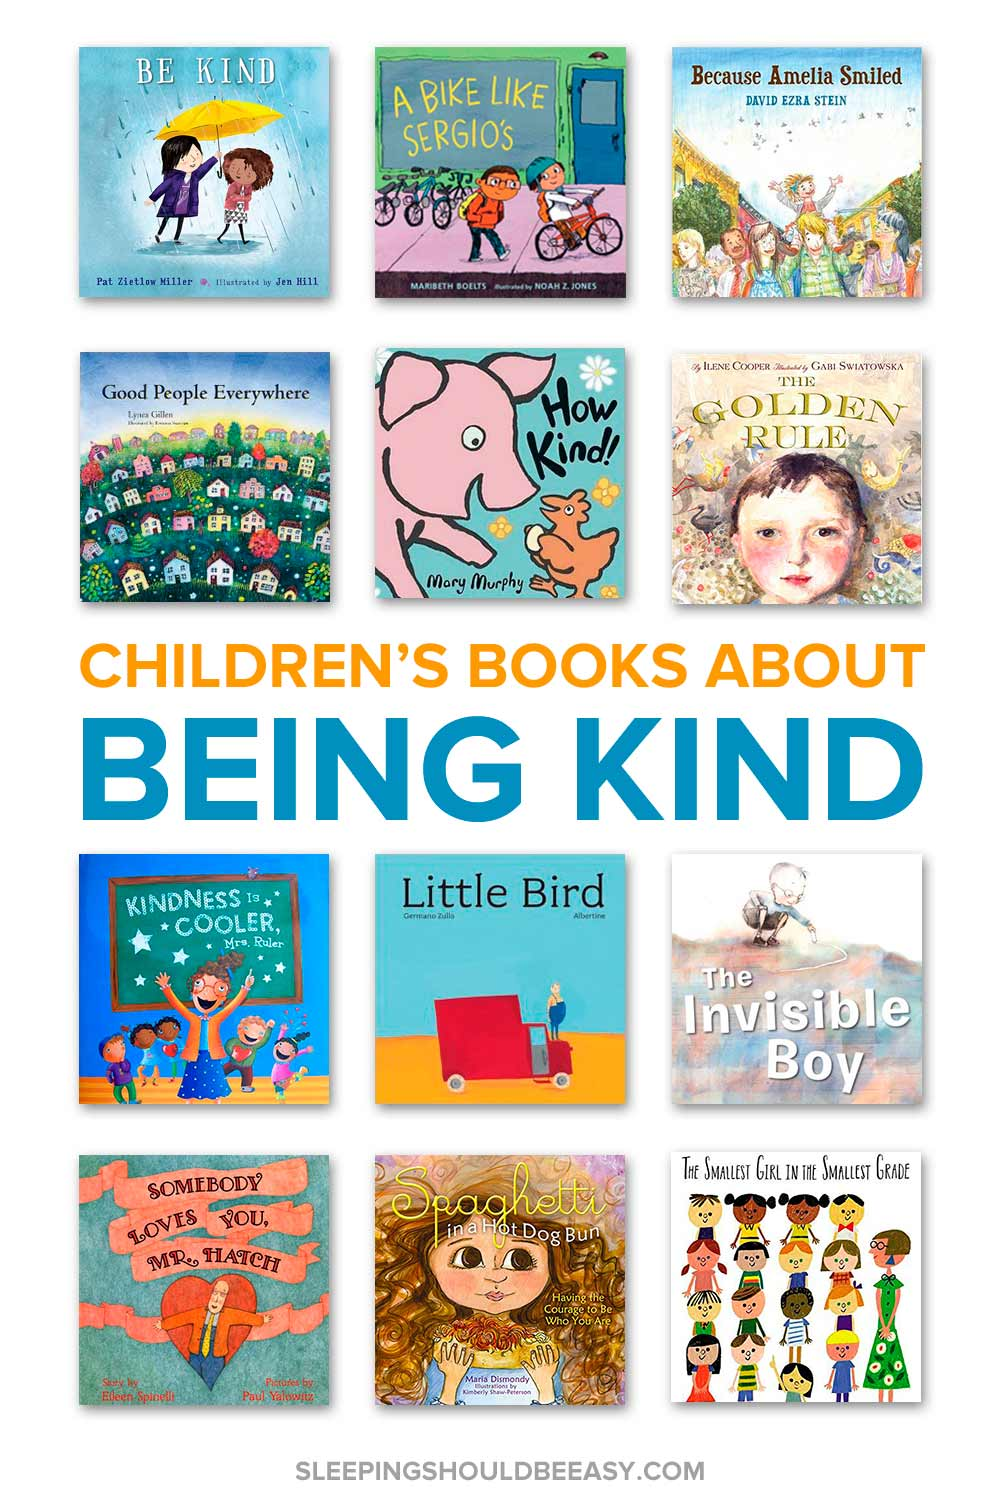 The Best Children's Books about Being Kind You Need to Read